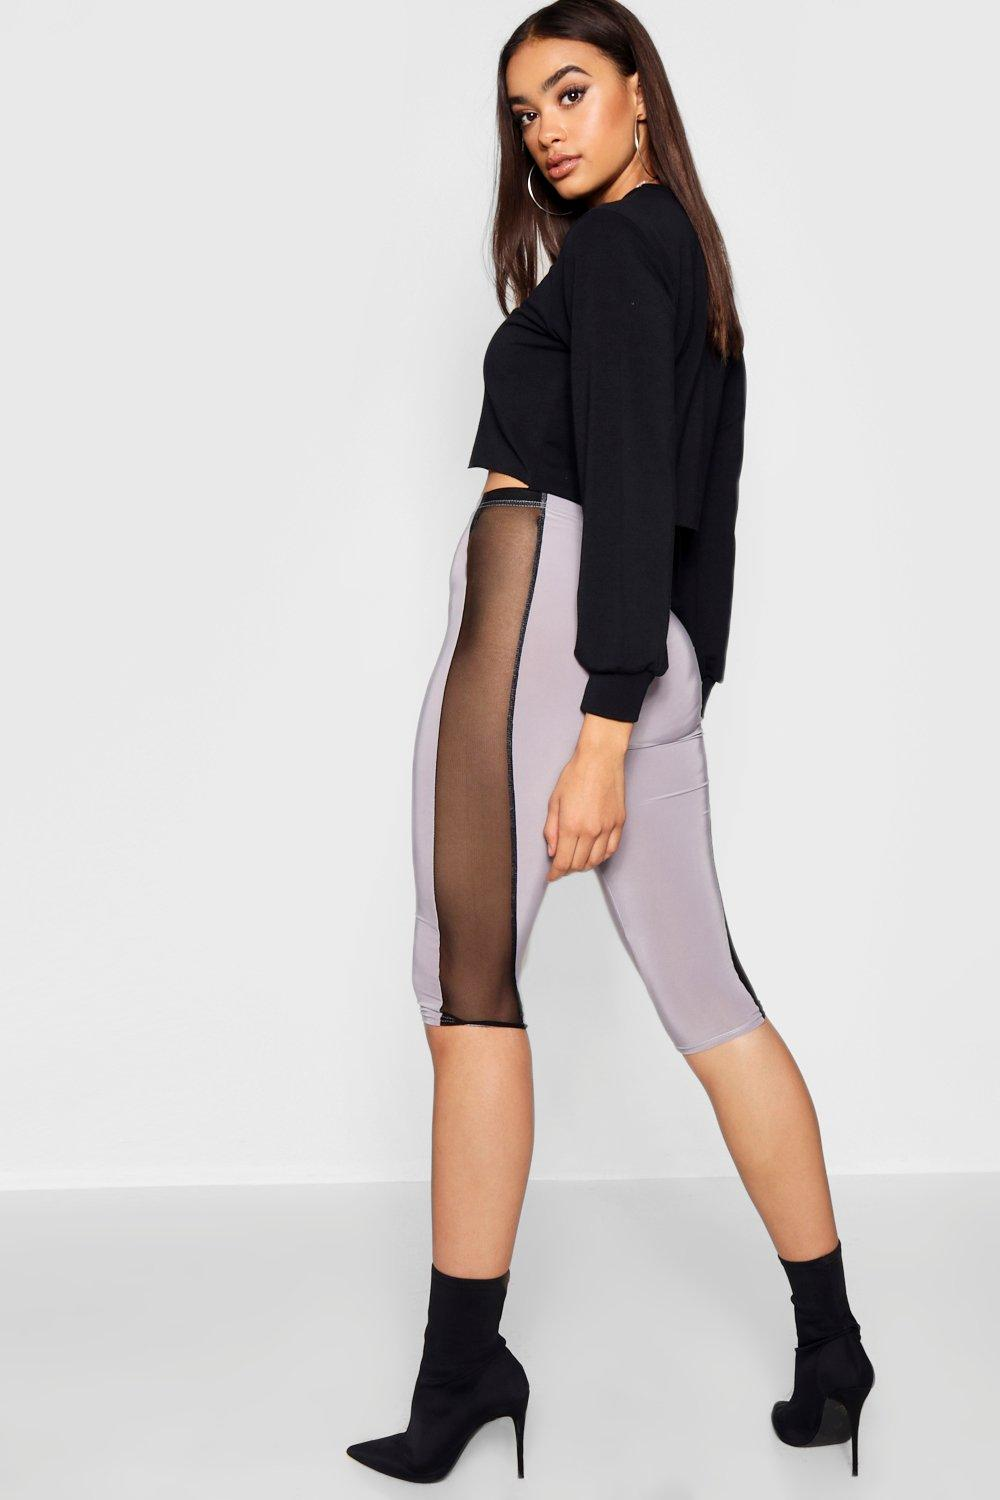 Mesh Cropped Cycle black Leggings Side xHwpw0SCqz